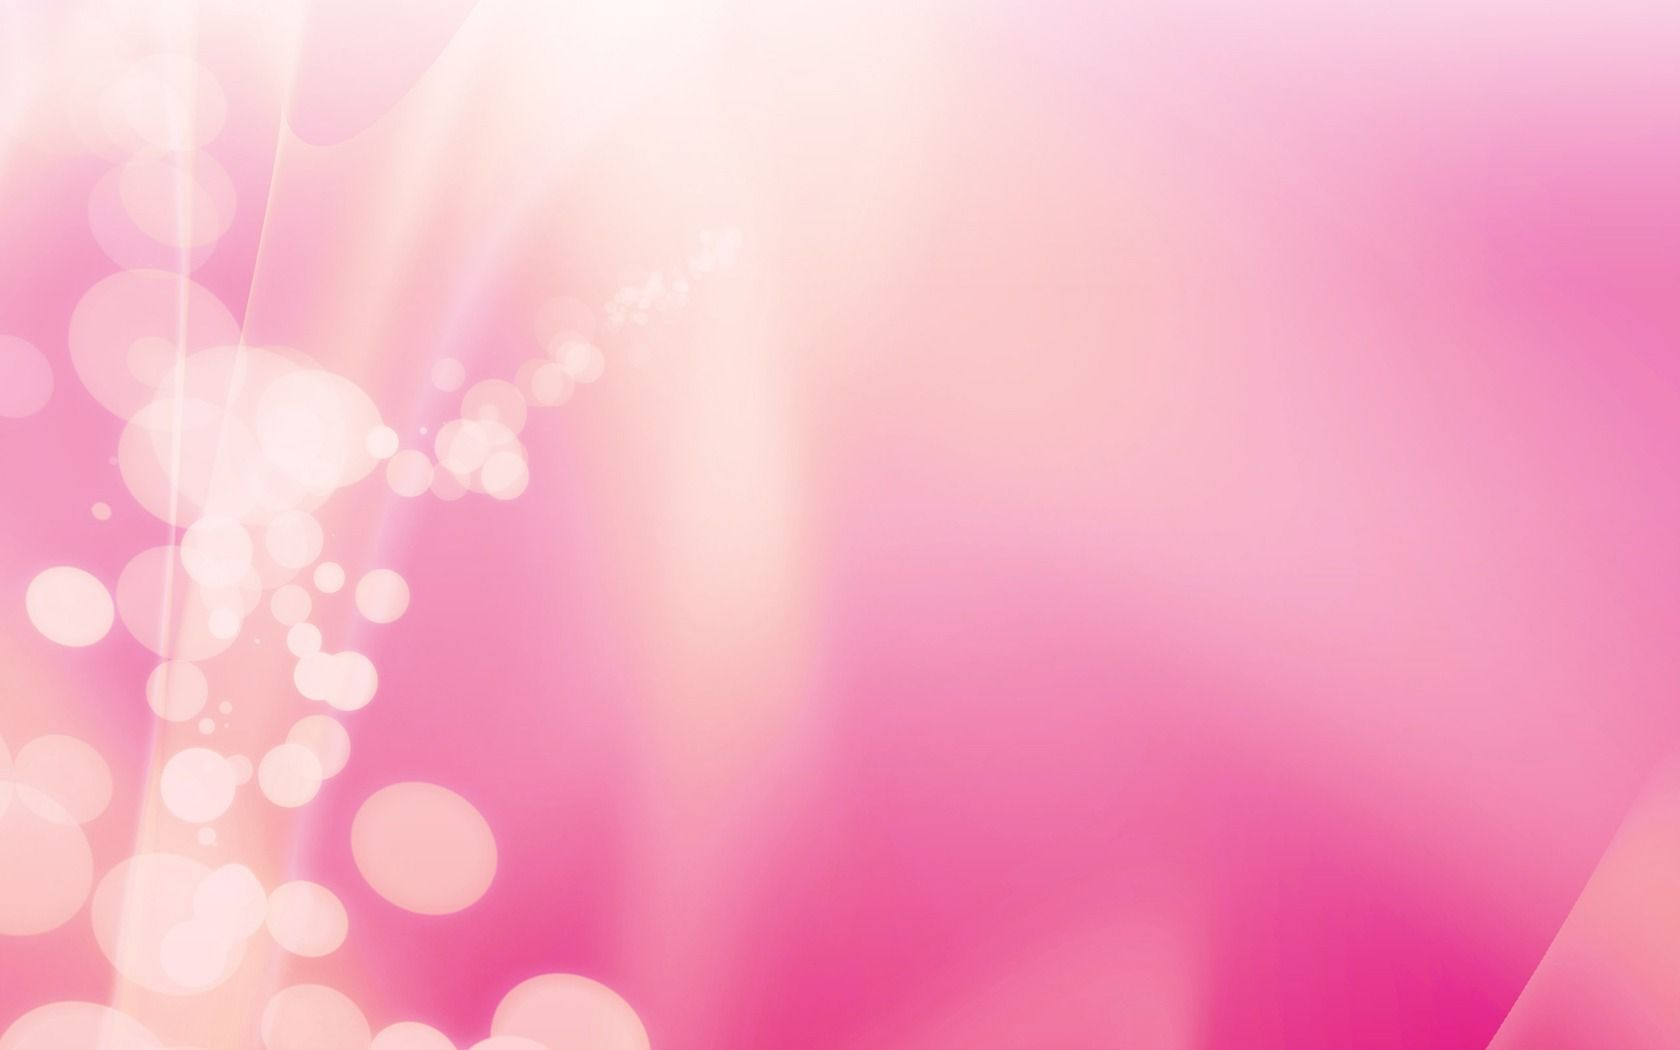 Abstract Pink Desktop Wallpapers   Top Abstract Pink Desktop